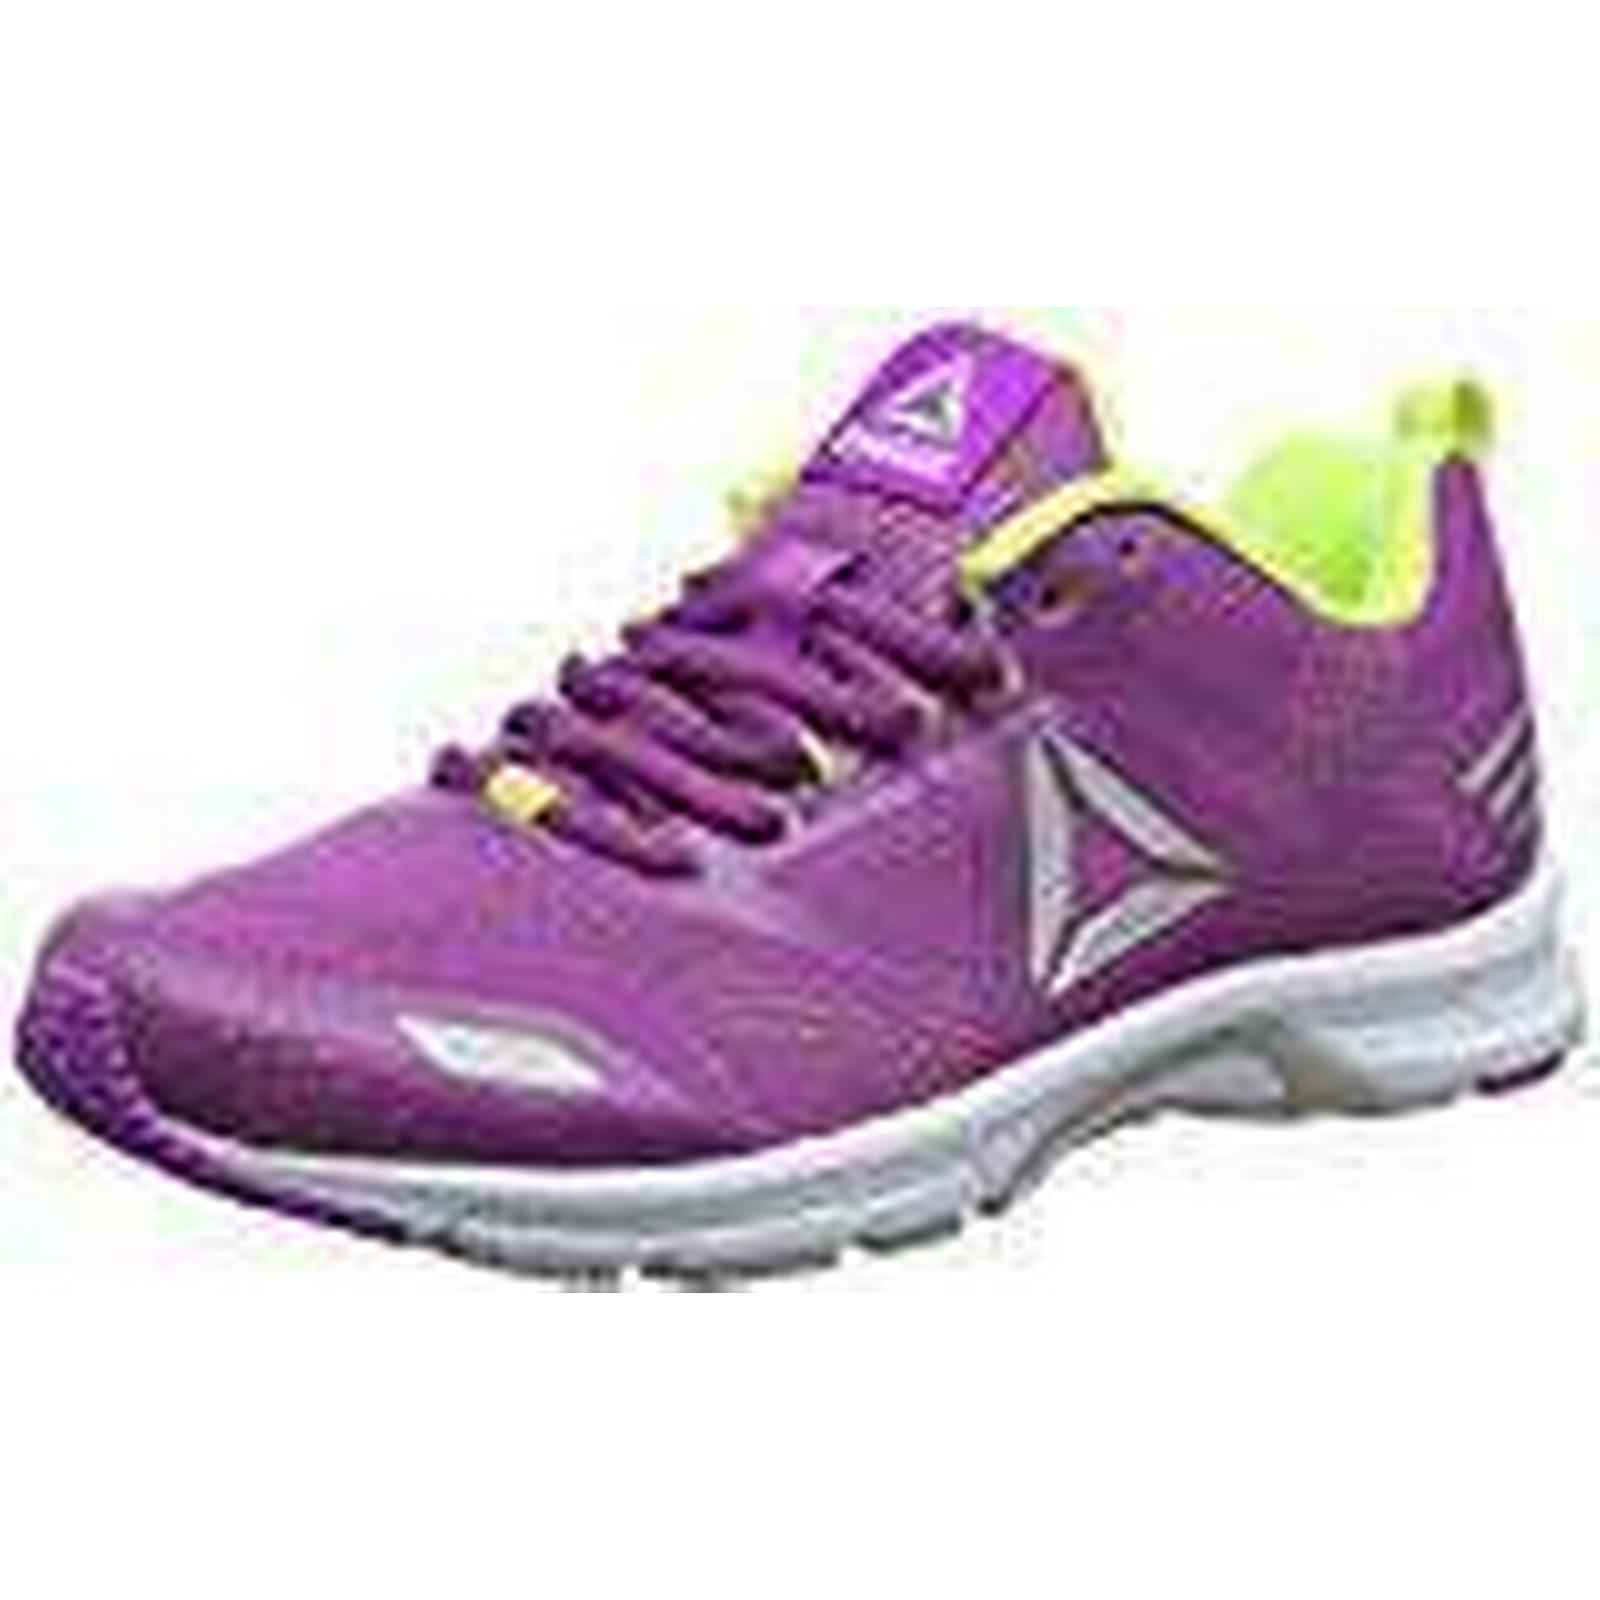 Reebok Women's Ahary Runner Running Flash/White/Silver), Shoes, Pink (Vicious Violet/Electric Flash/White/Silver), Running 4 UK 37 EU 74d3e5